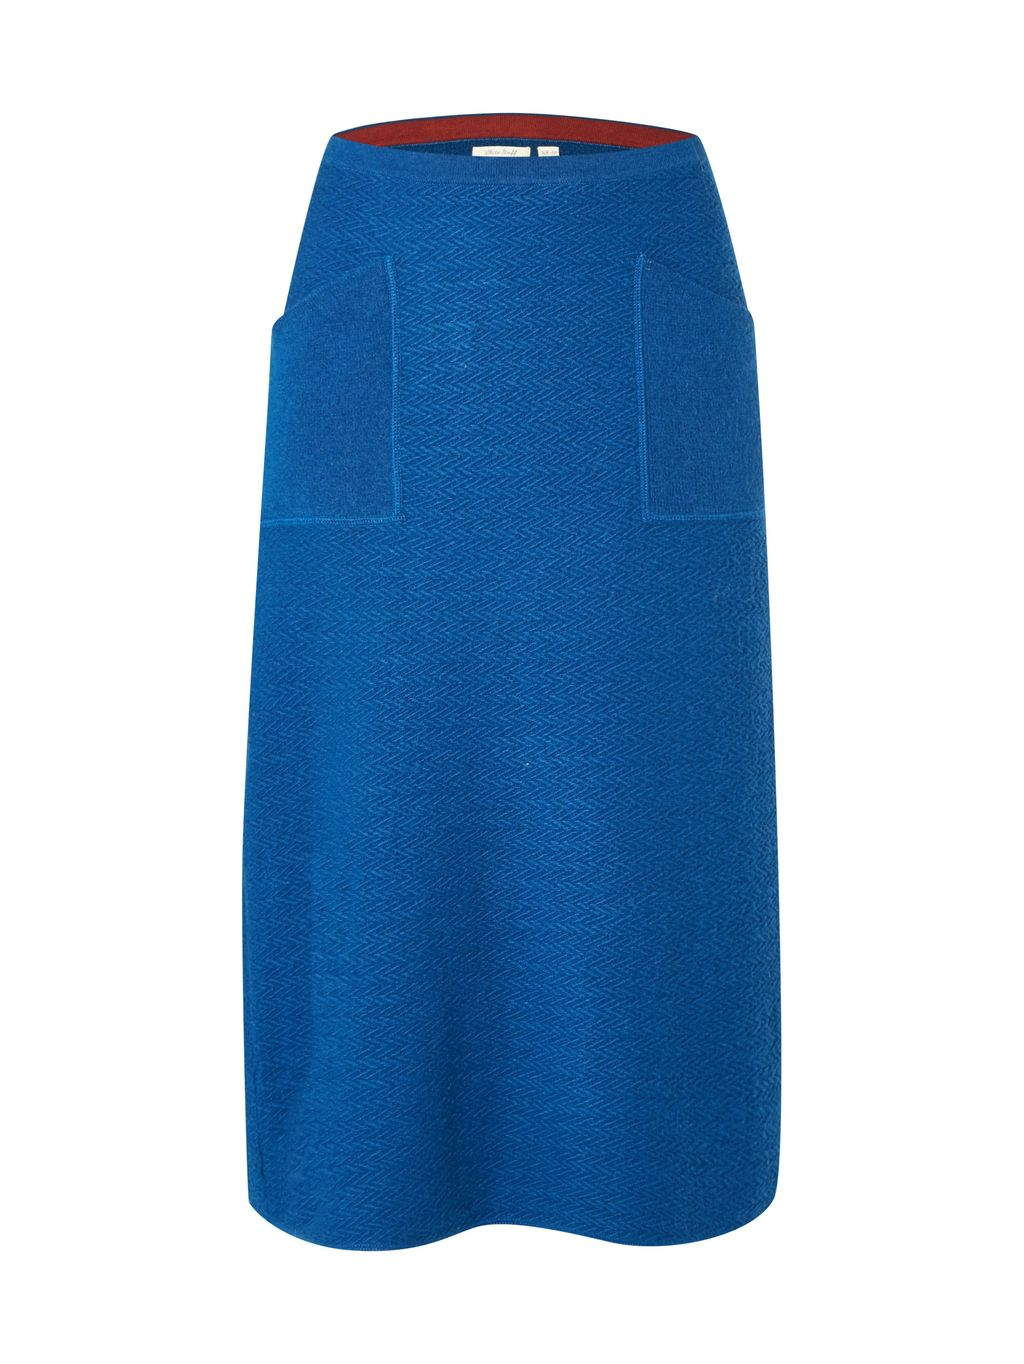 North Star Knitted Skirt, Blue - length: below the knee; pattern: plain; style: straight; waist: mid/regular rise; predominant colour: royal blue; occasions: casual, creative work; fibres: wool - mix; texture group: knits/crochet; fit: straight cut; pattern type: knitted - fine stitch; season: a/w 2016